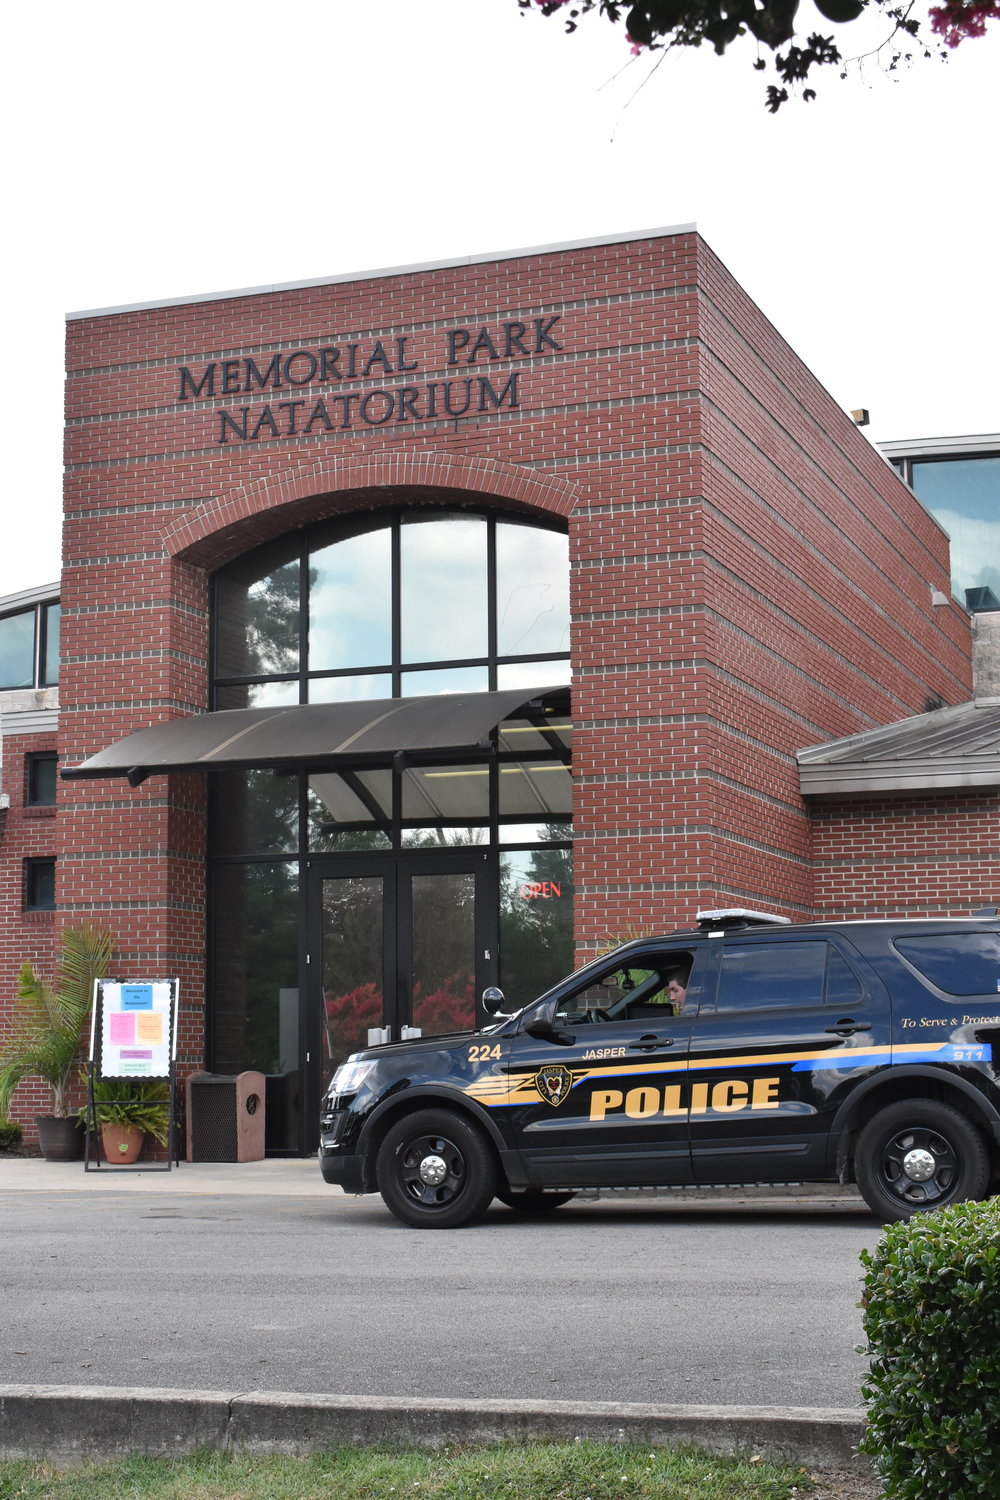 A police car sits outside the Memorial Park Natatorium late Saturday afternoon after a drowning victim was pulled out of a pool there. The 5-year-old victim was later pronounced dead at Walker Baptist Medical Center.